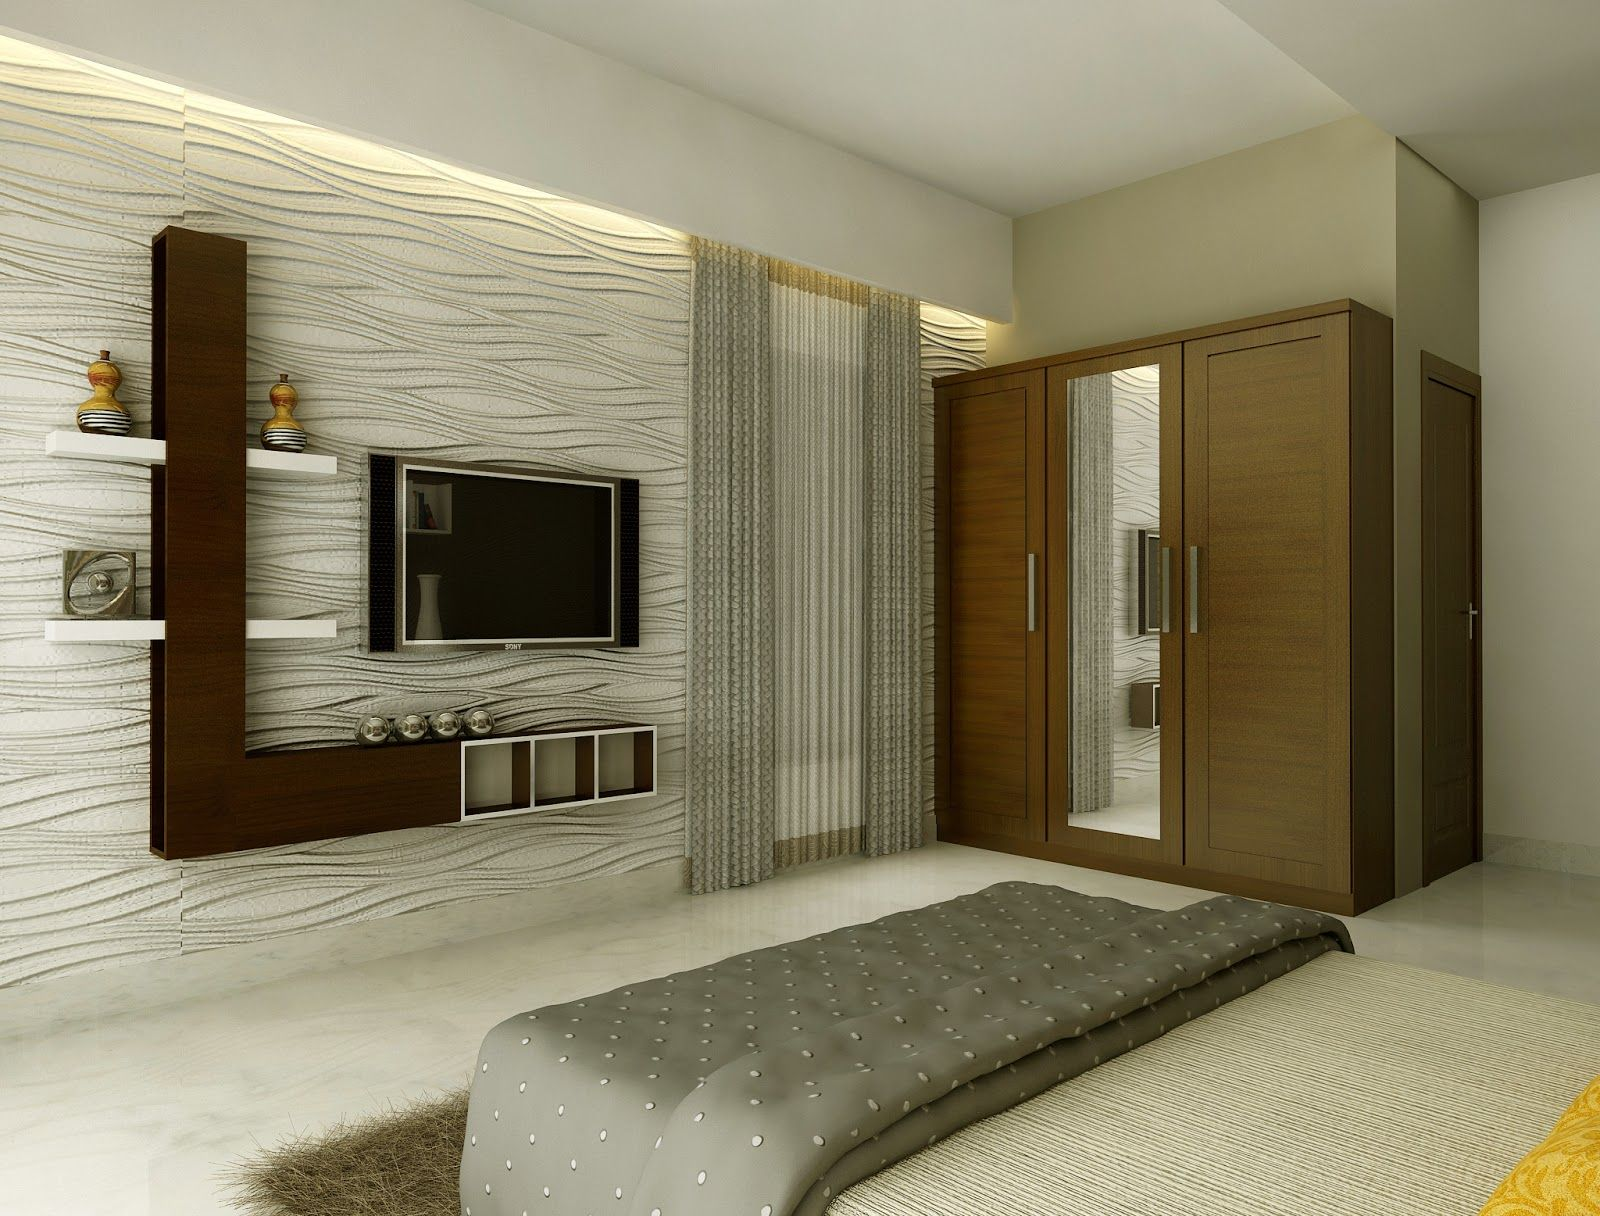 Room Bedroom Design Kerala Style